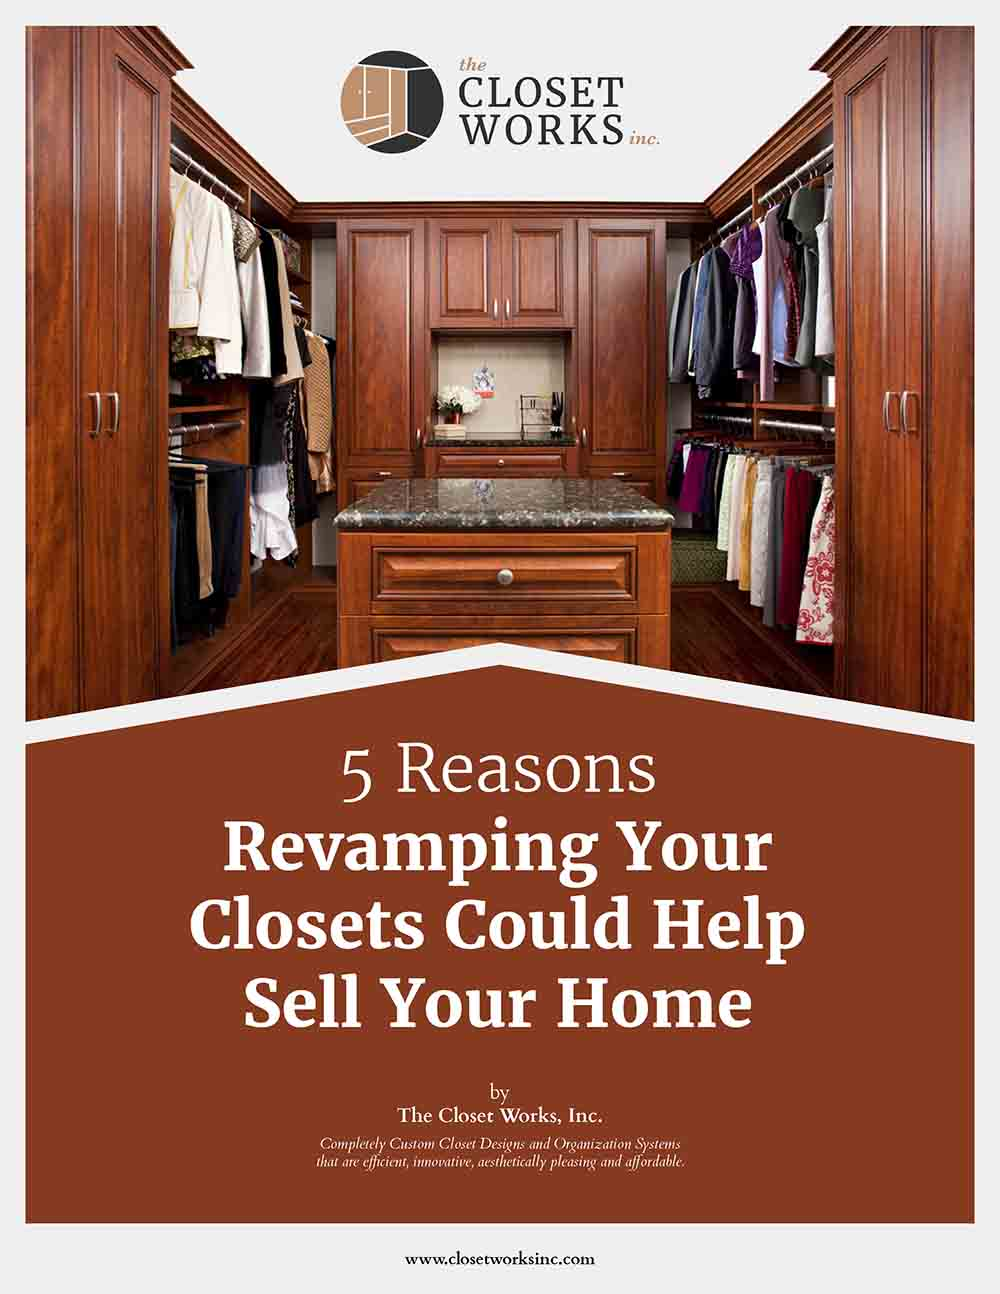 5 Reasons Revamping Your Closets Could Help Sell Your Home